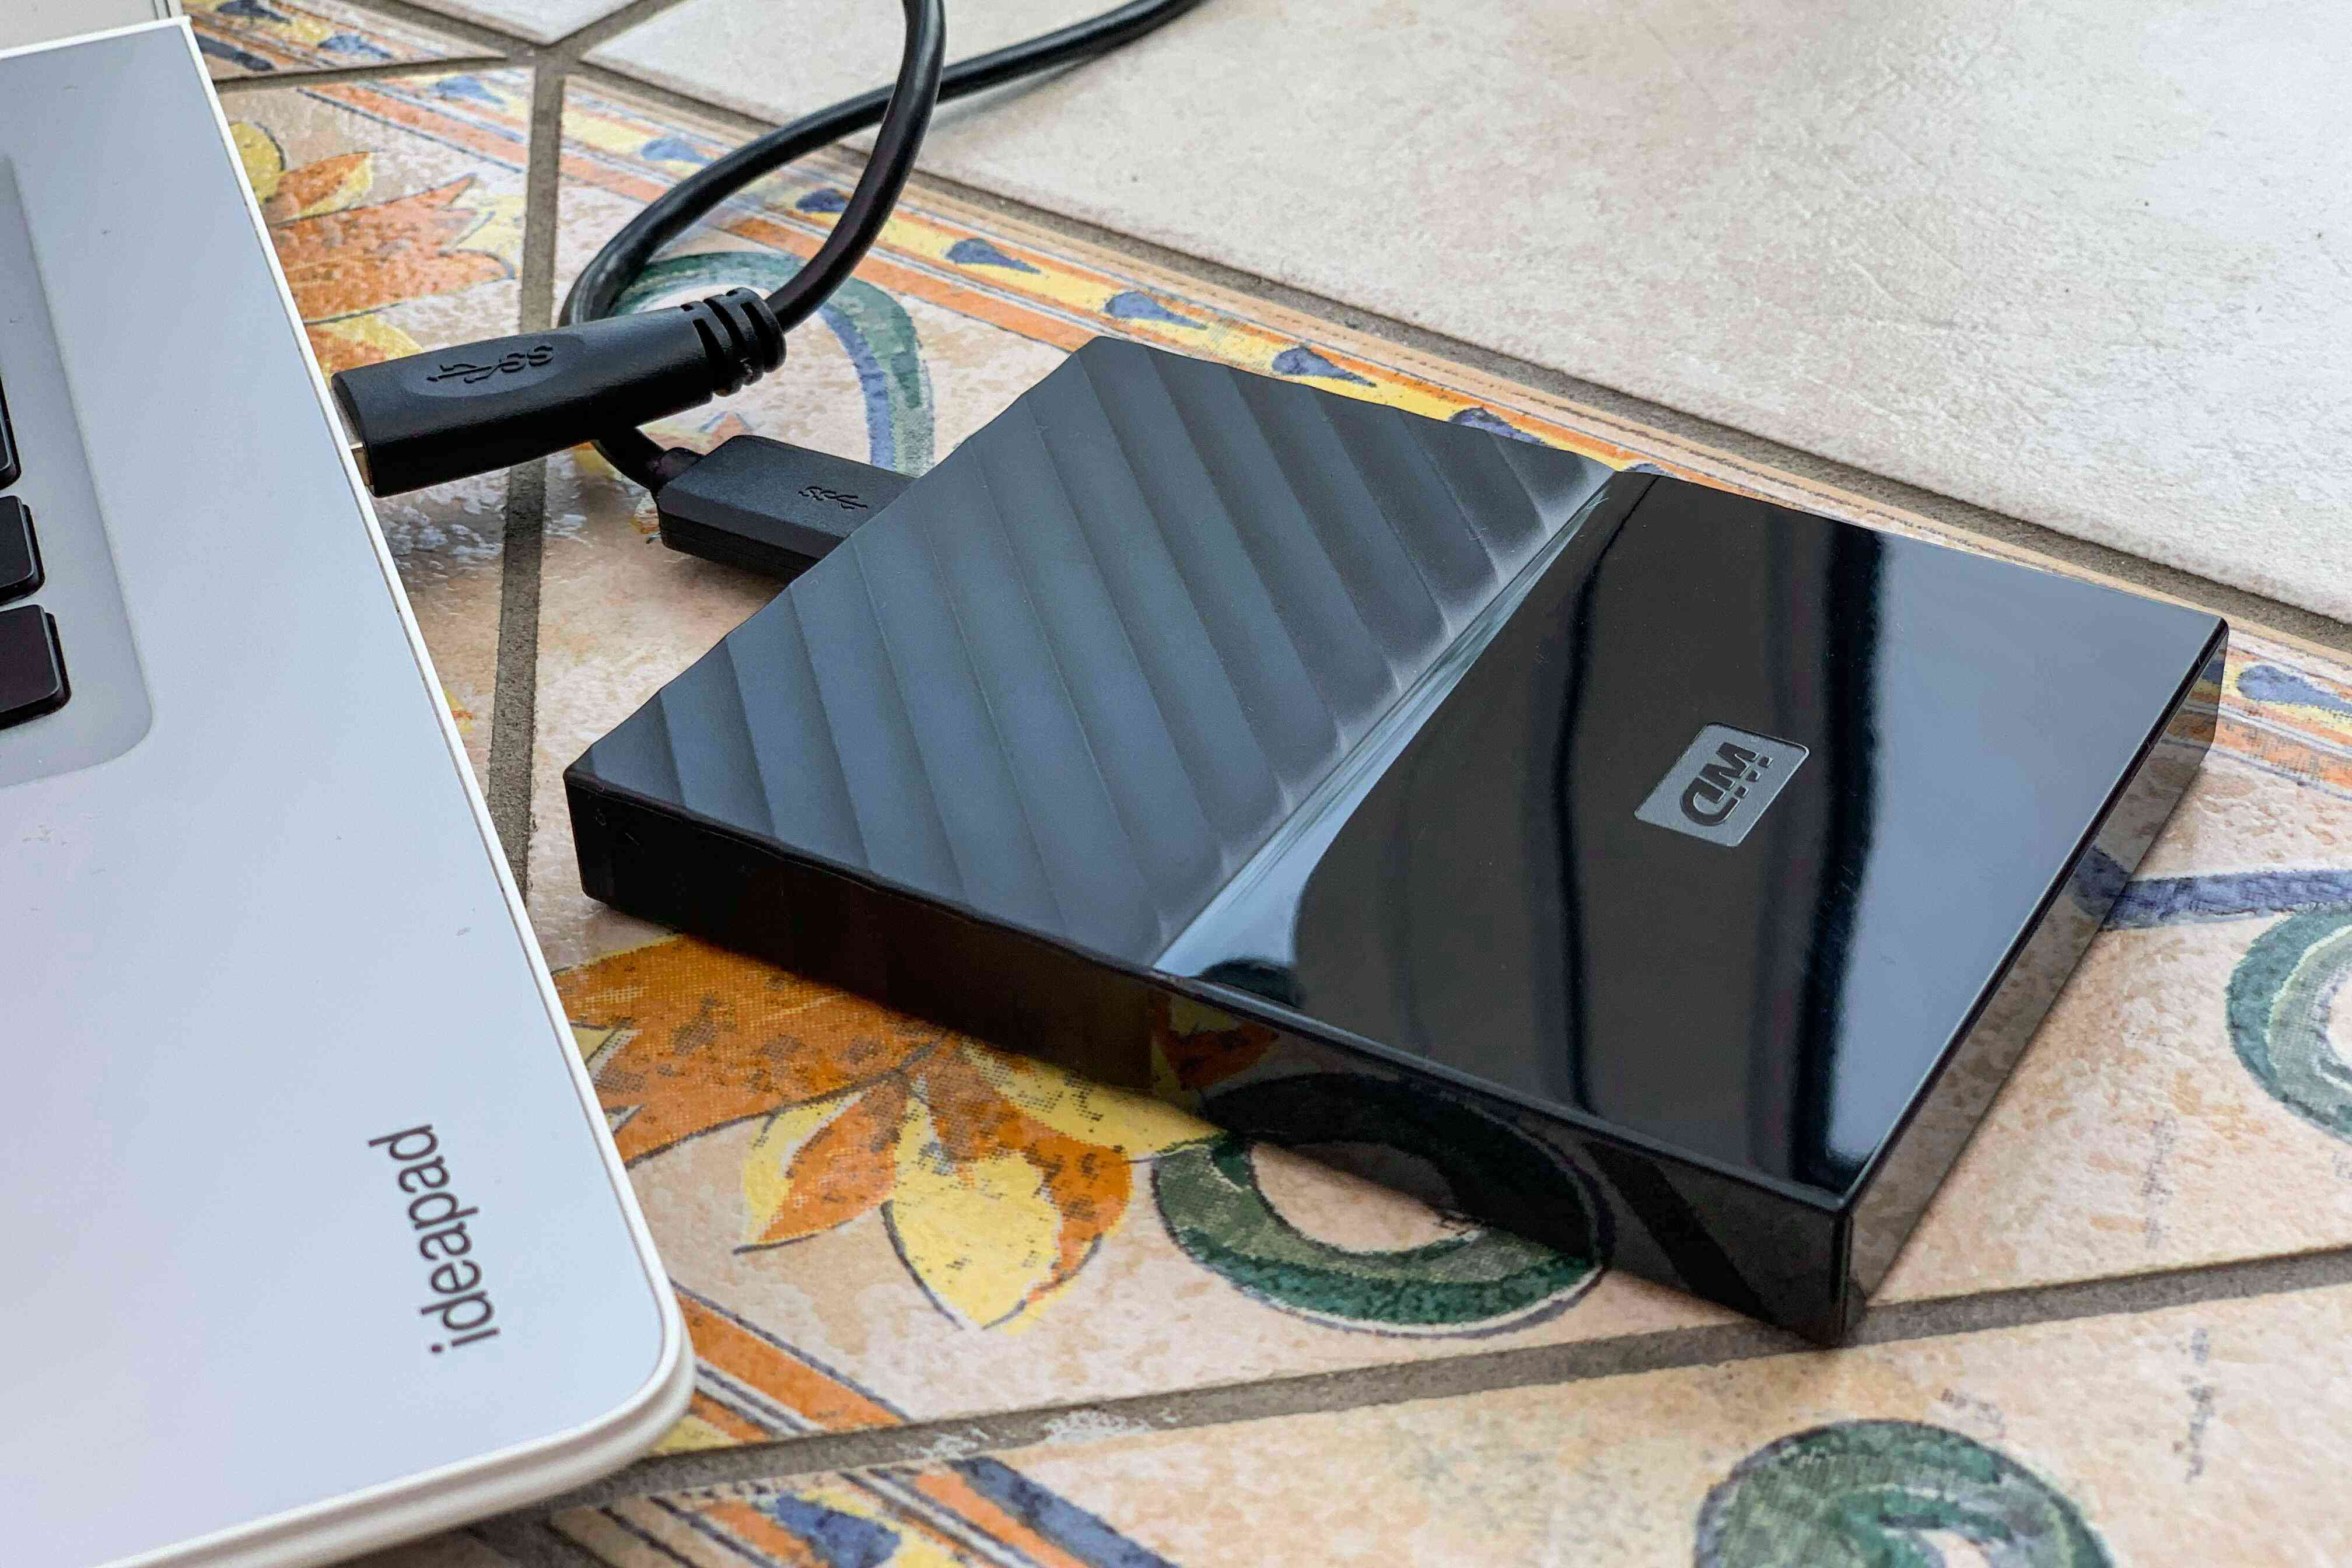 WD 1TB My Passport Review